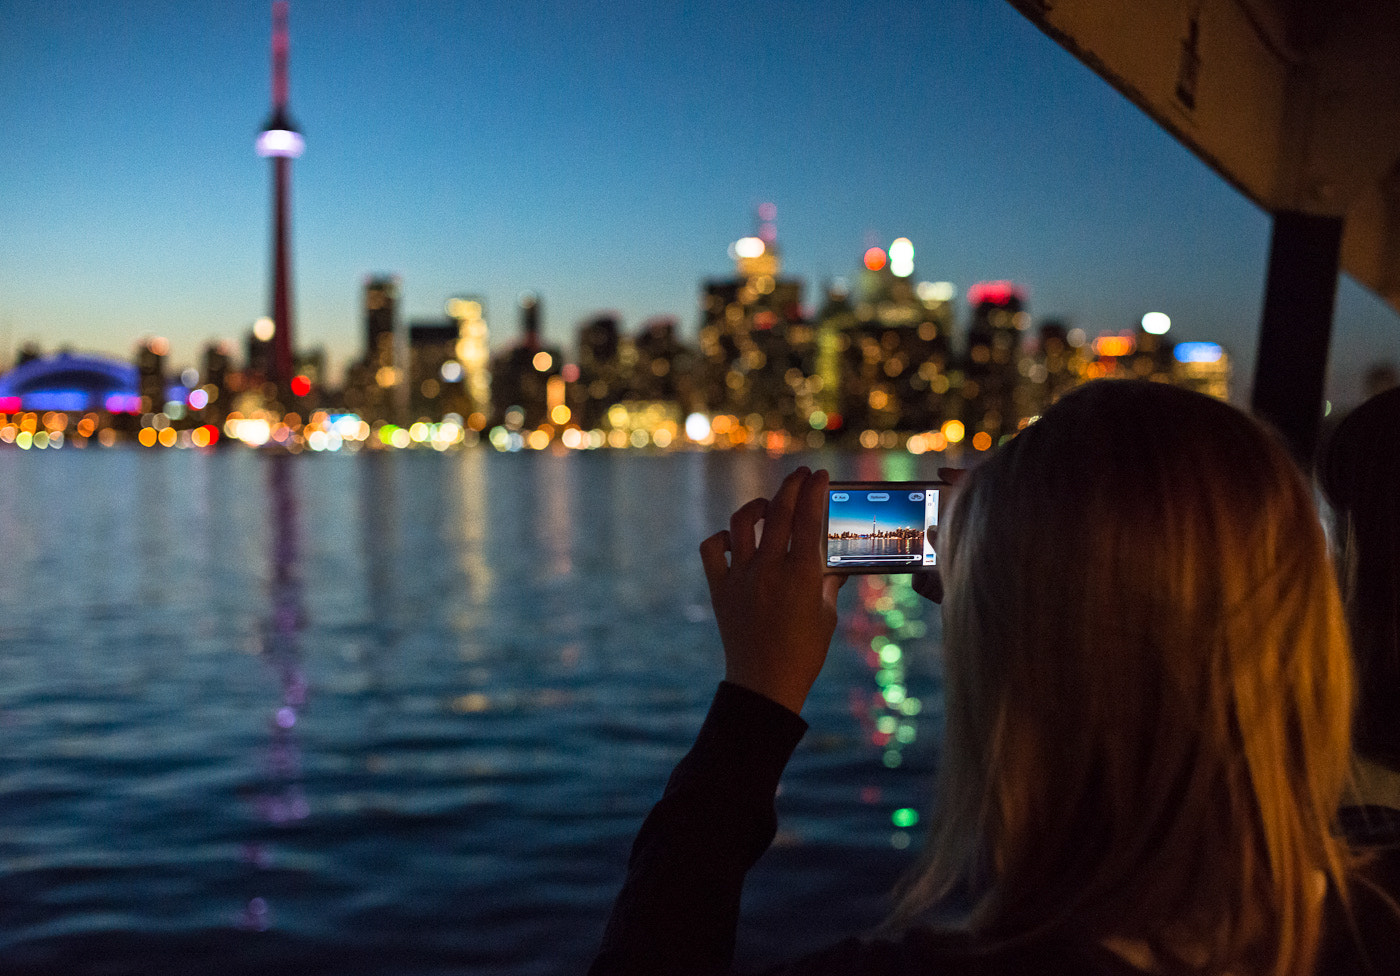 Photograph City in focus by Frank Lemire on 500px